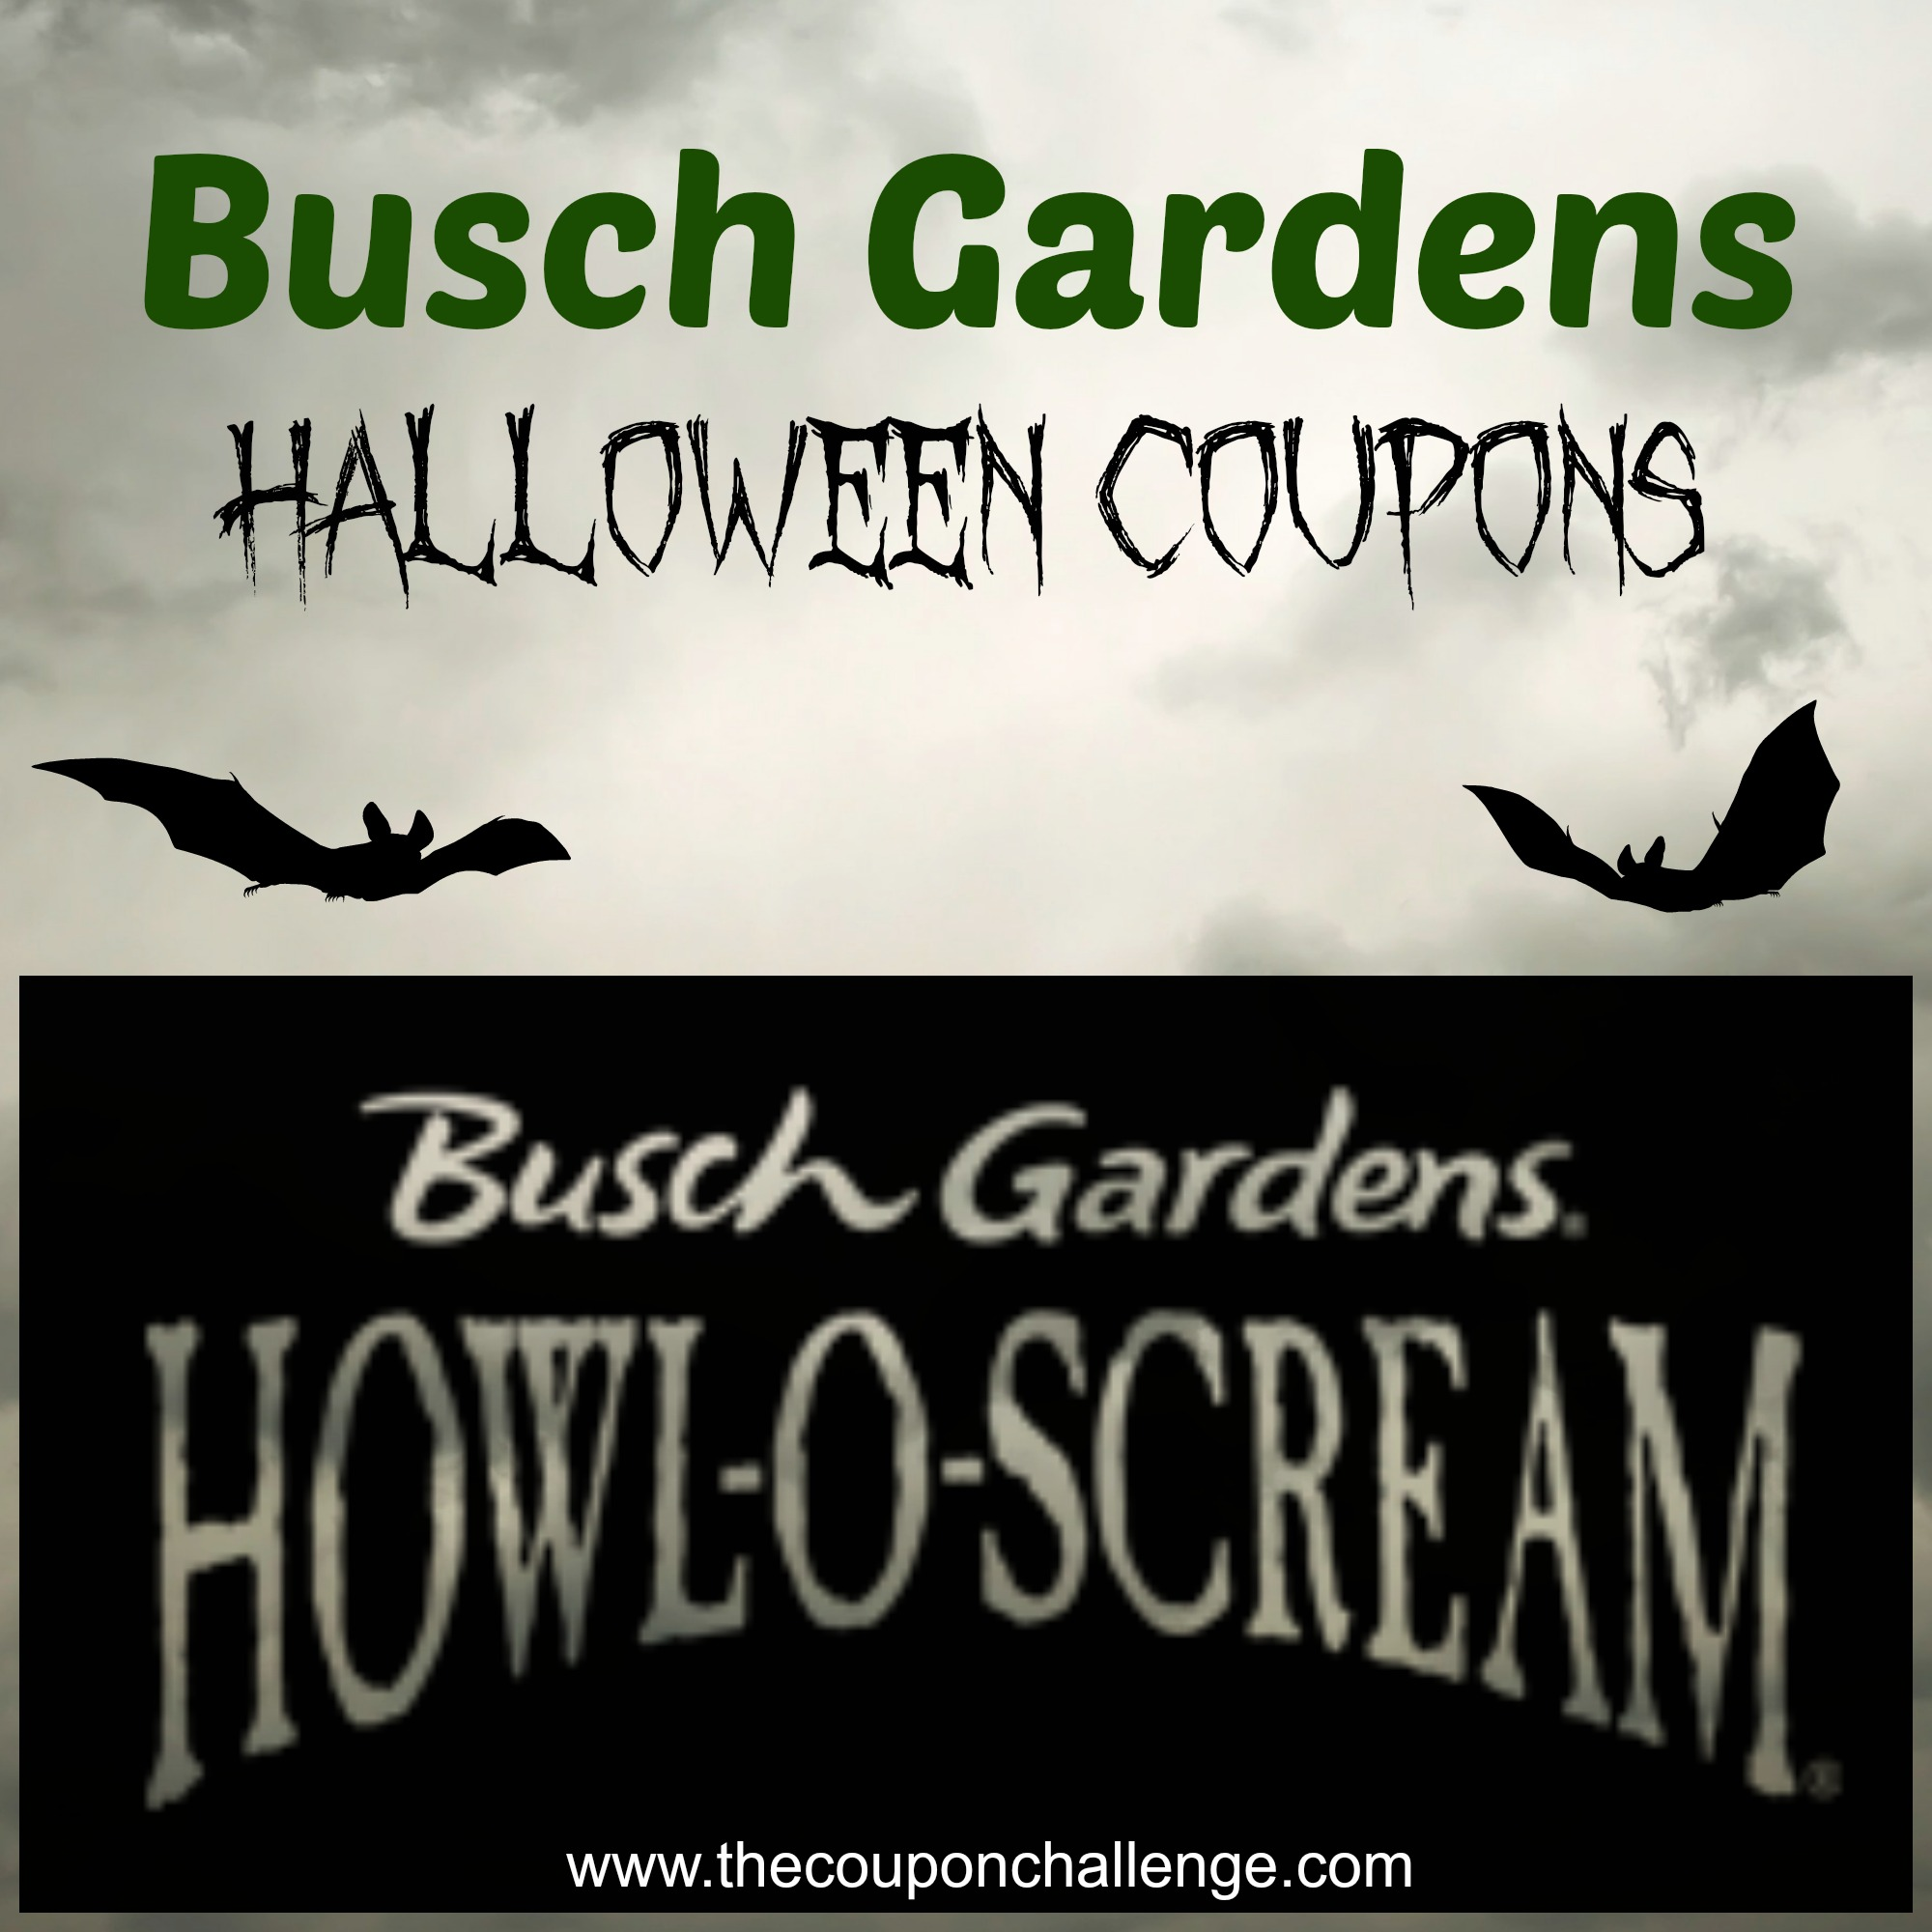 Promo Code Busch Gardens. Busch Gardens Archives   The Coupon Challenge ...